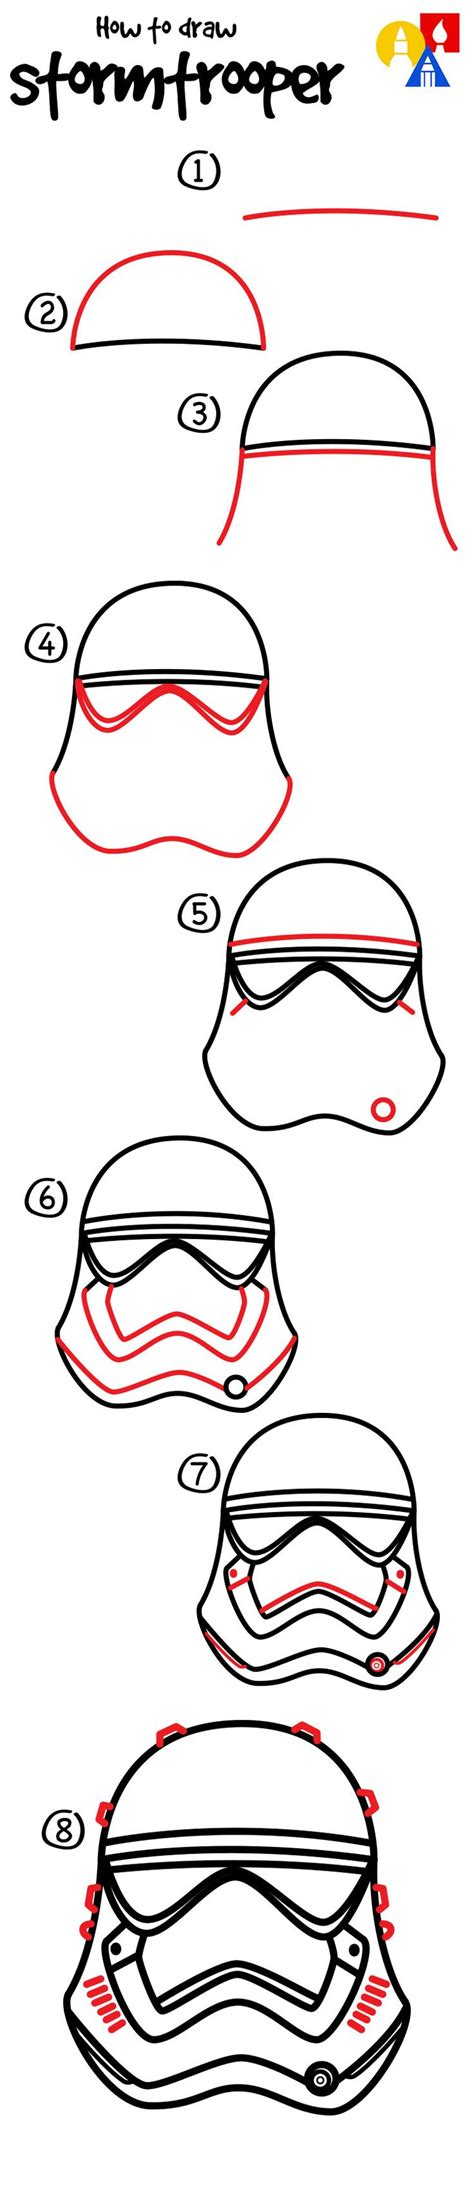 How To Draw A Boat Art Hub by How To Draw A First Order Storm Trooper Helmet Art For